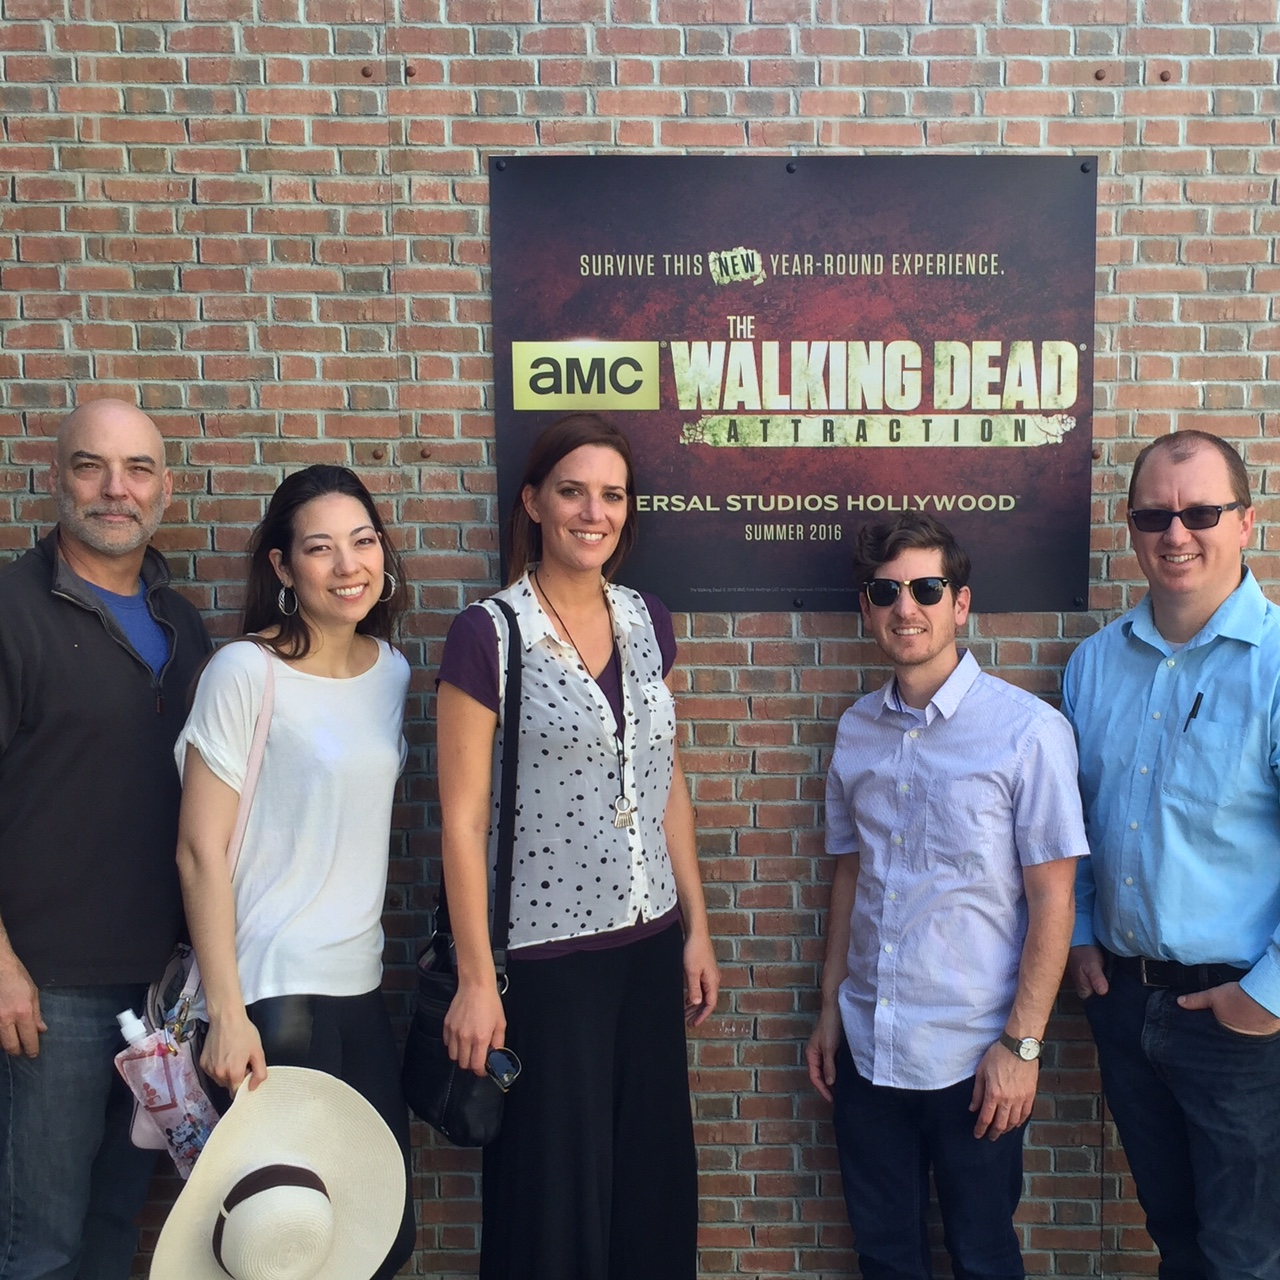 The Walking Dead Attraction - Wyatt Design Group